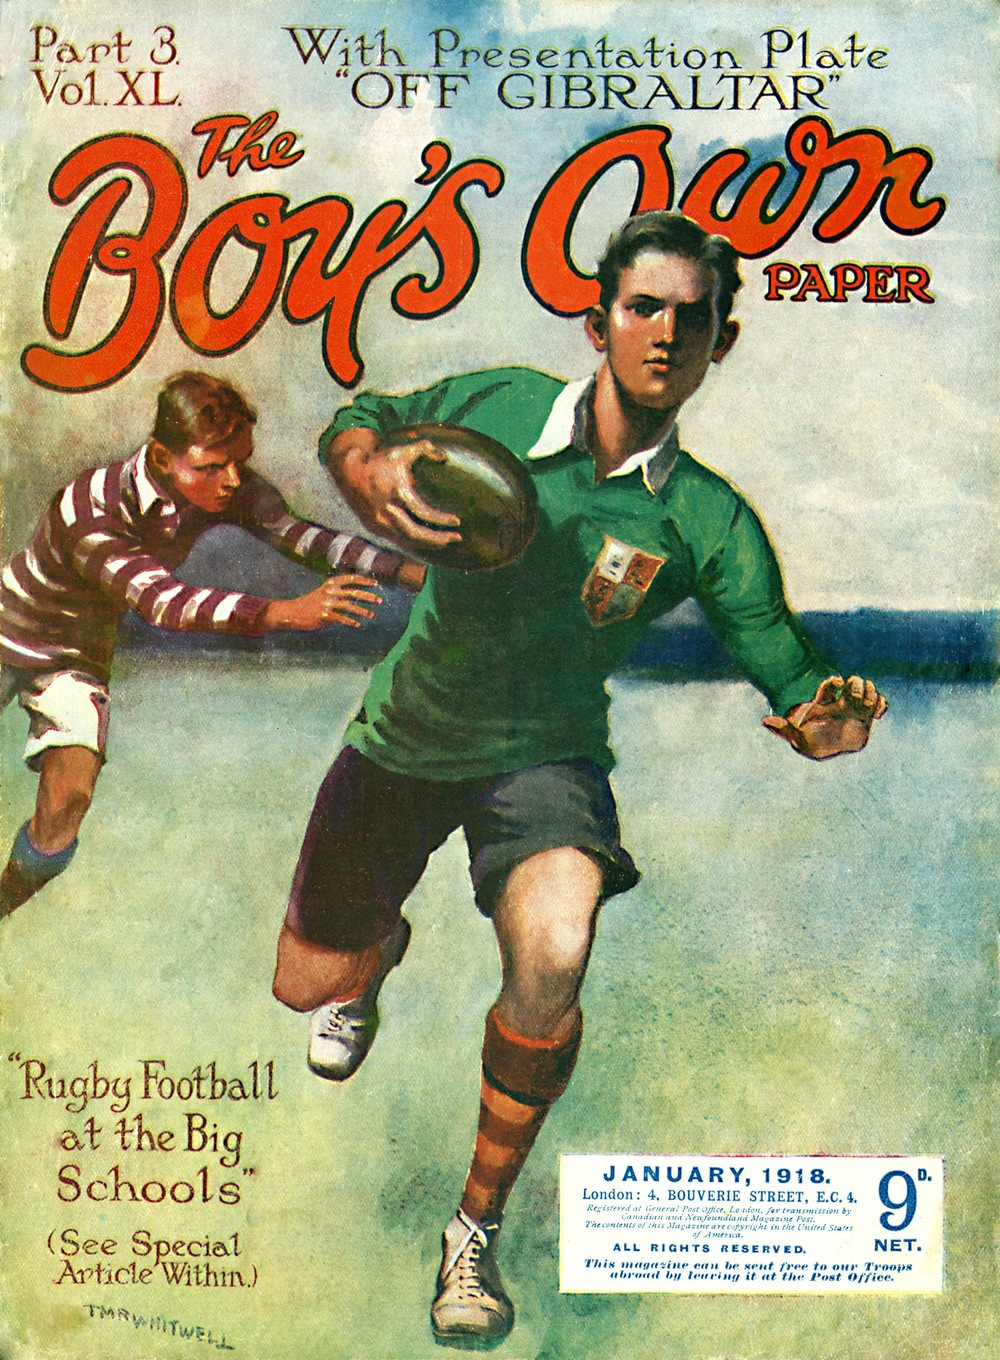 'Rugby Football at the Big Schools'. In 2015 as in 1918?